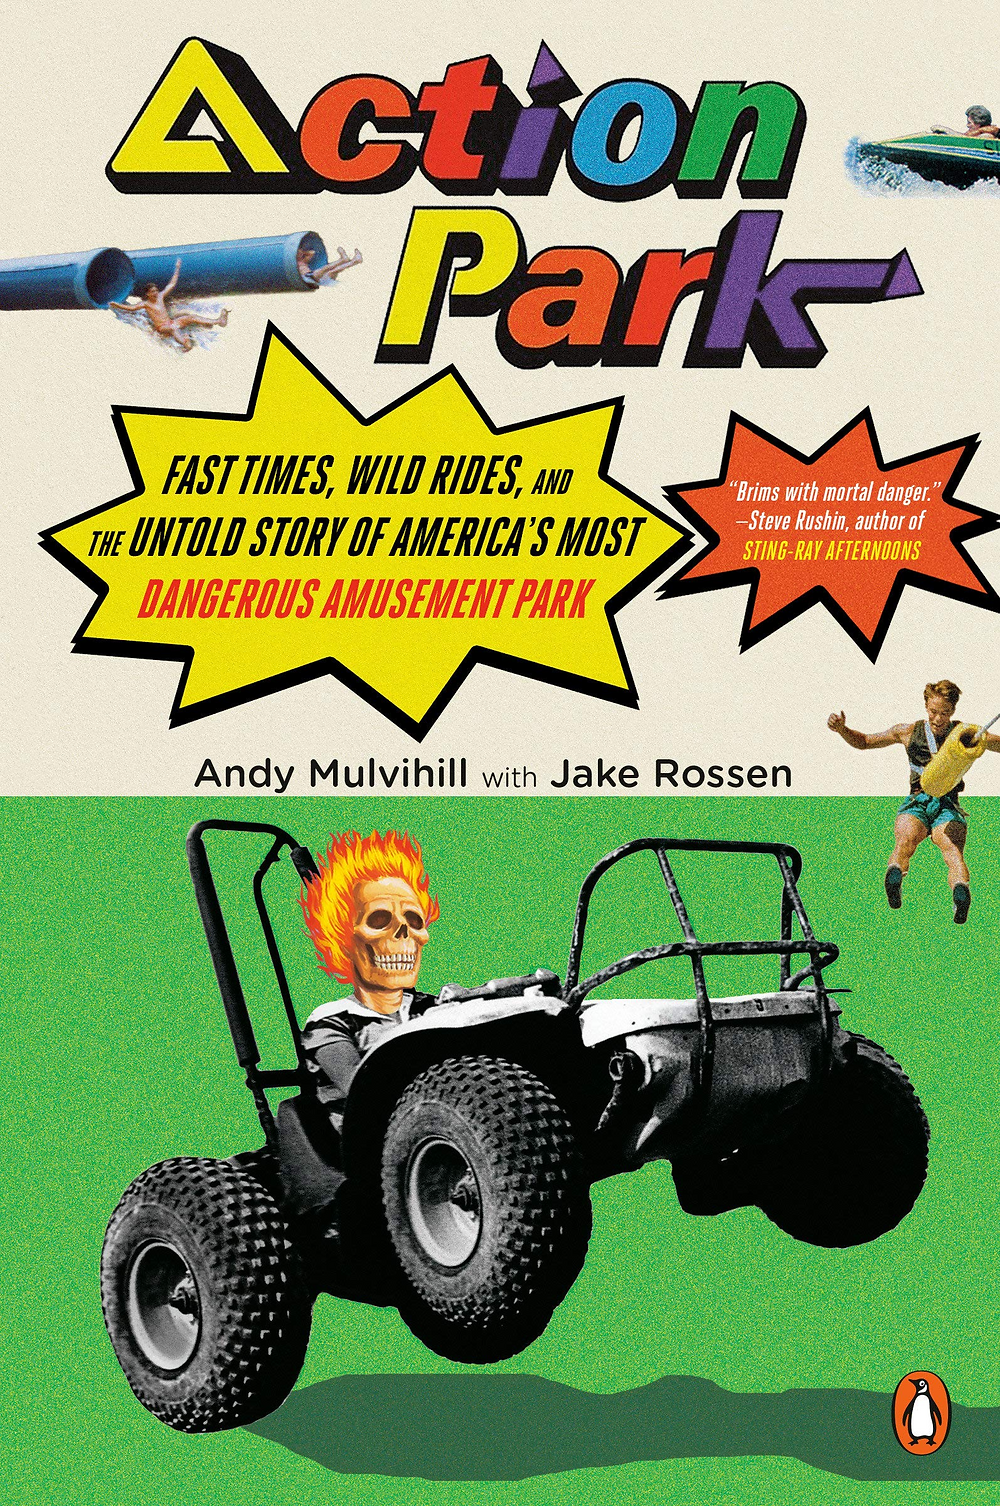 book cover, book jacket